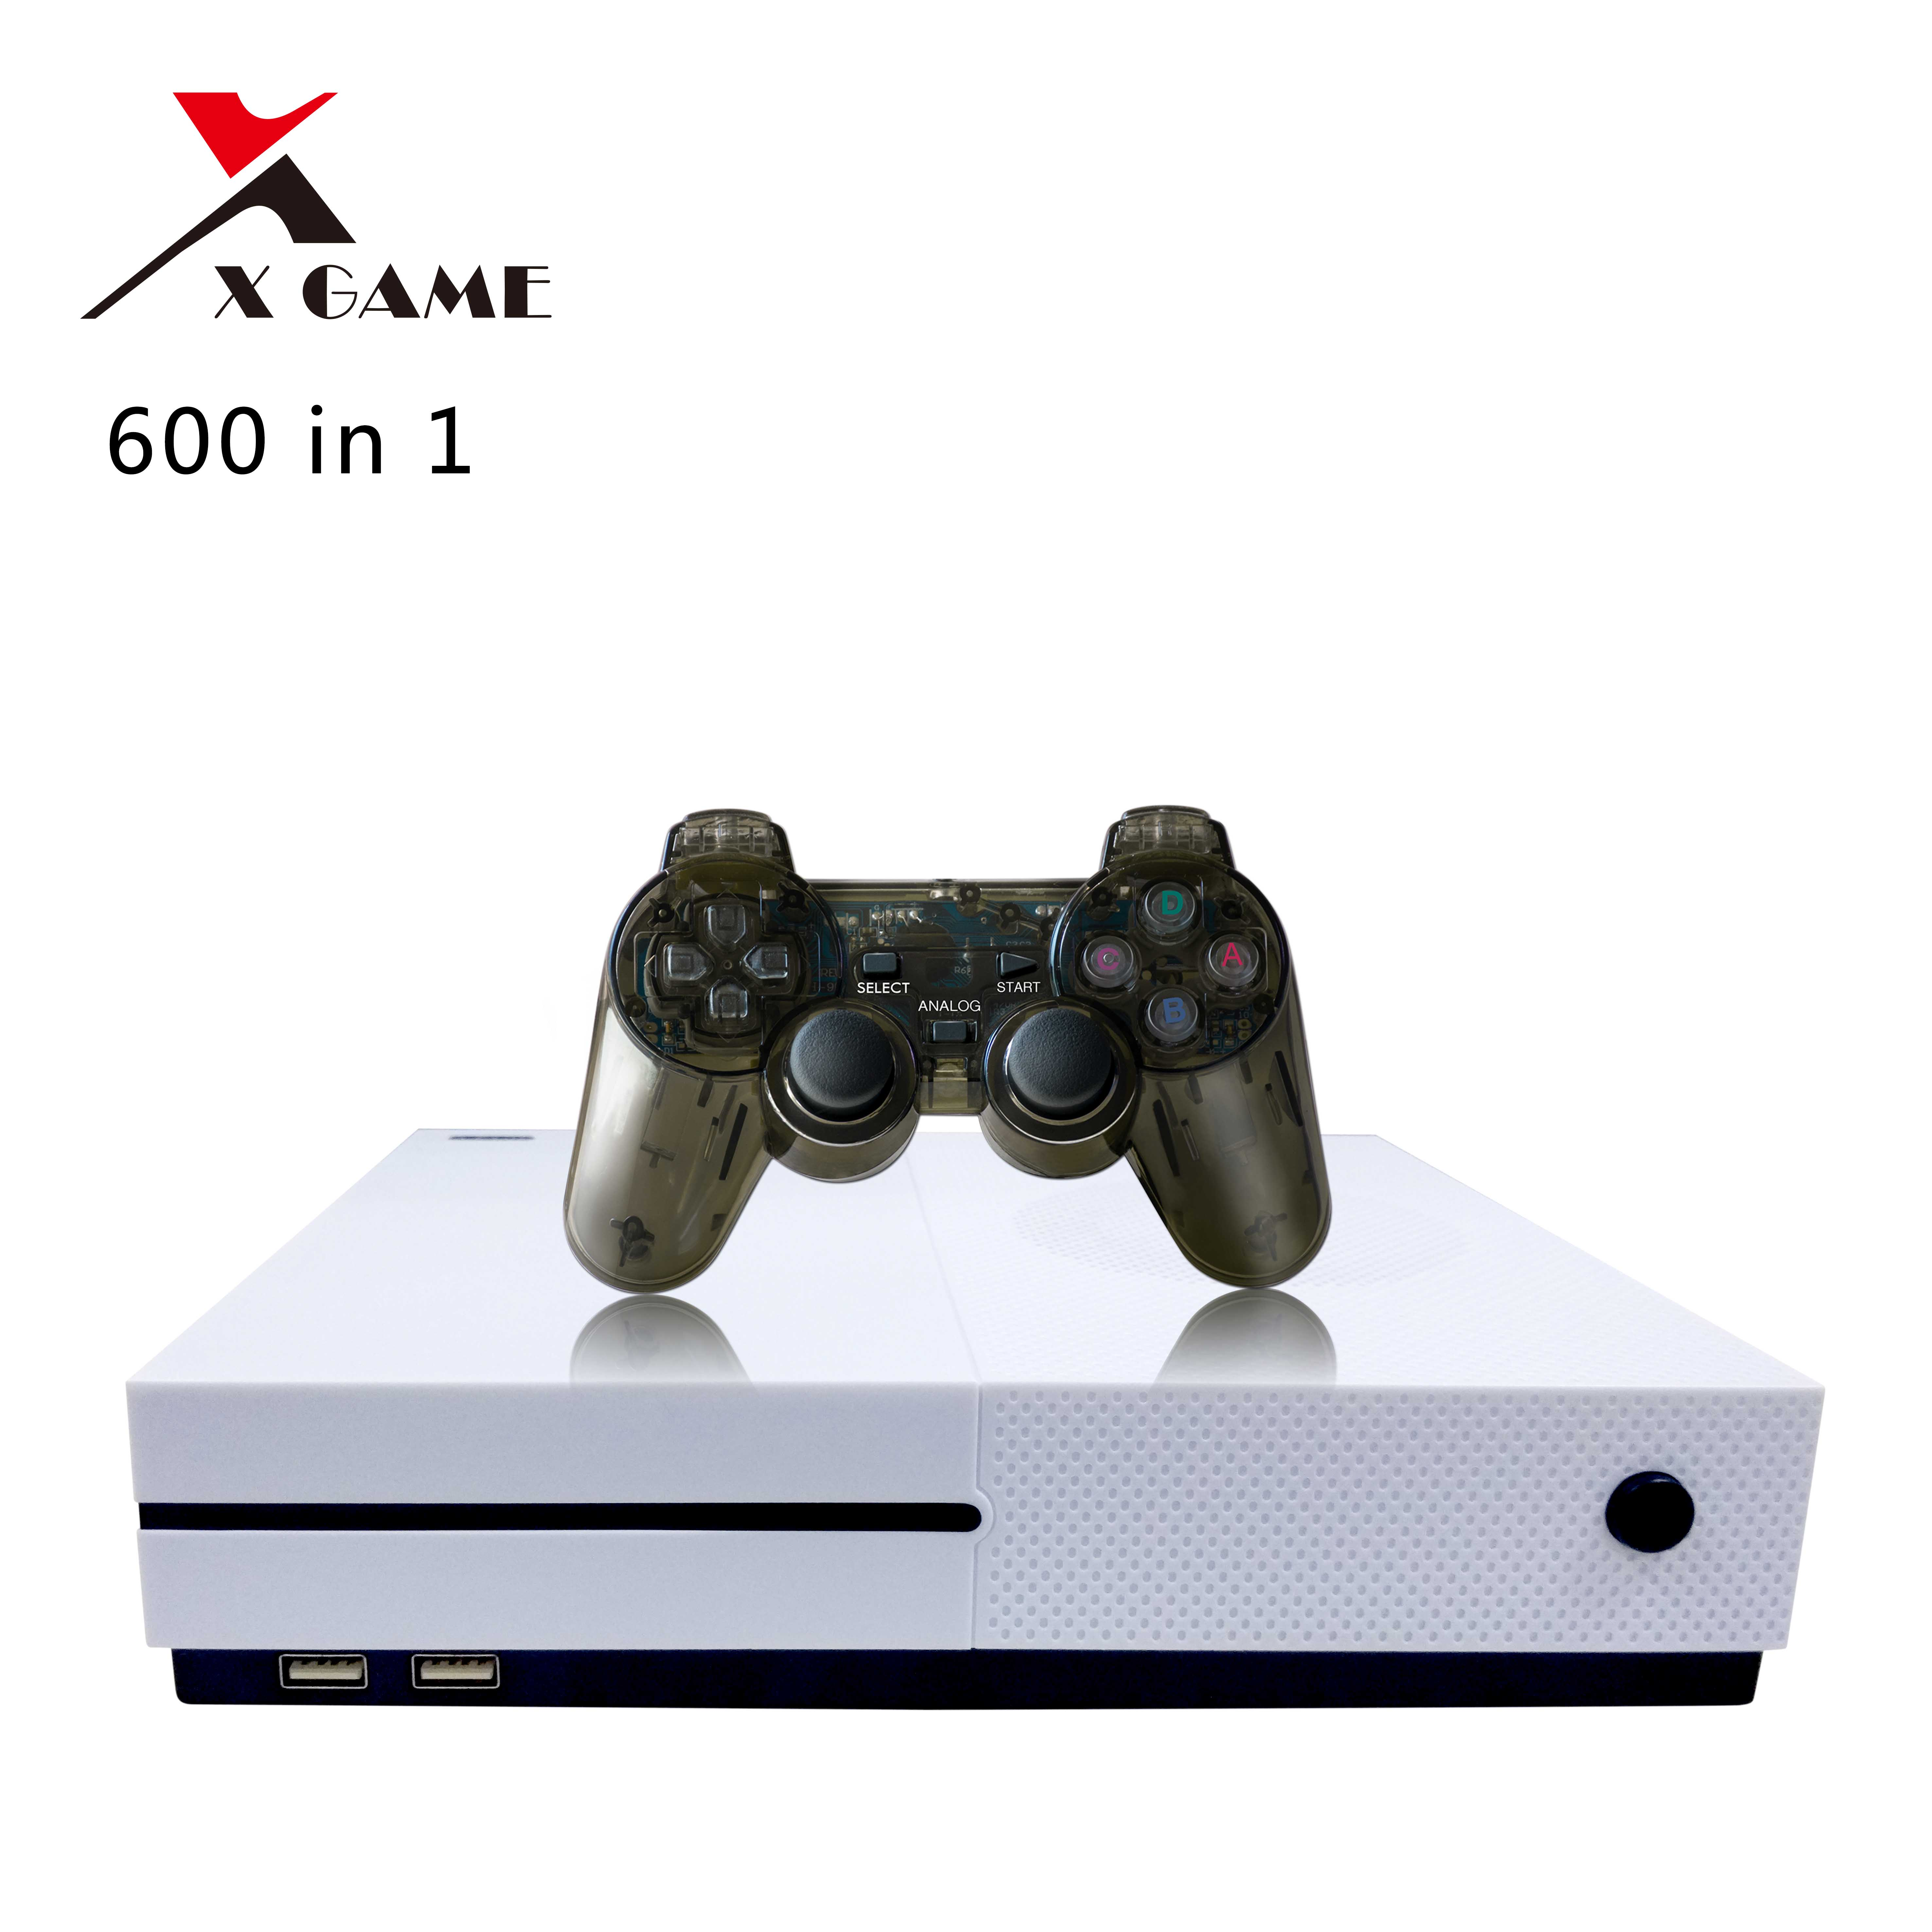 64 Bit Video Game Console Free Film Download With Dual Blue Controllers -  Buy Blue Film Video Download,X-game,Hd Video Free Download Product on